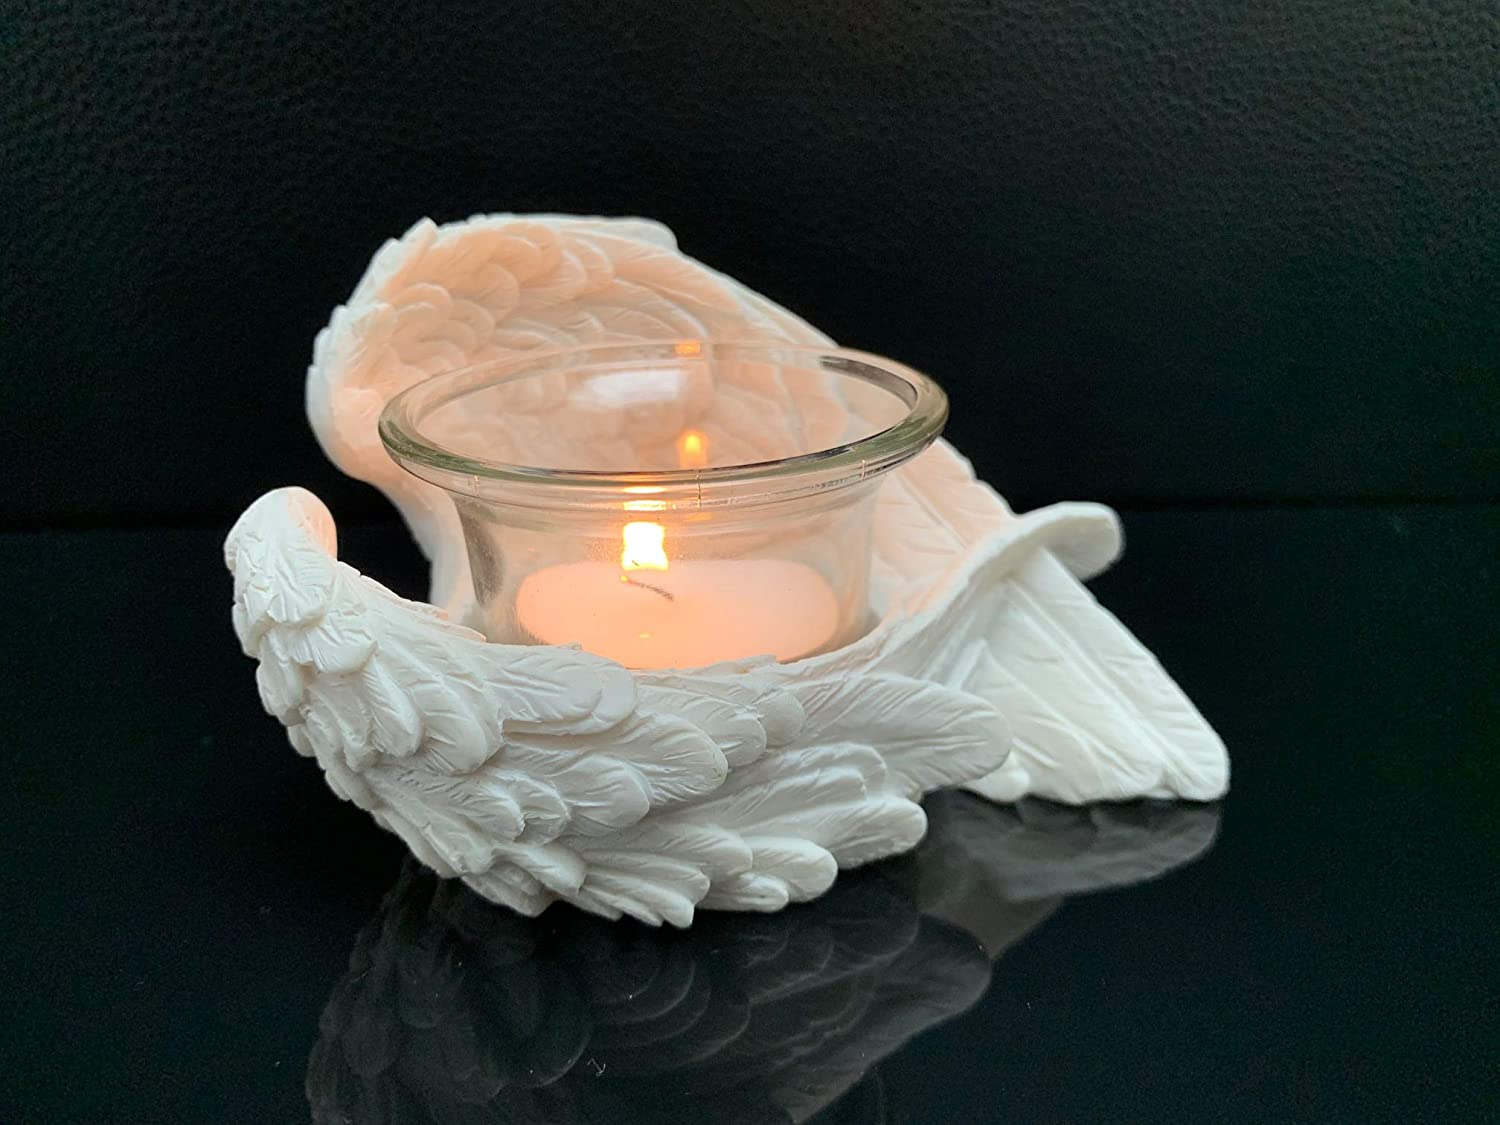 RSQO Puckator Angel Wings Candle Holder Ornament Mothers